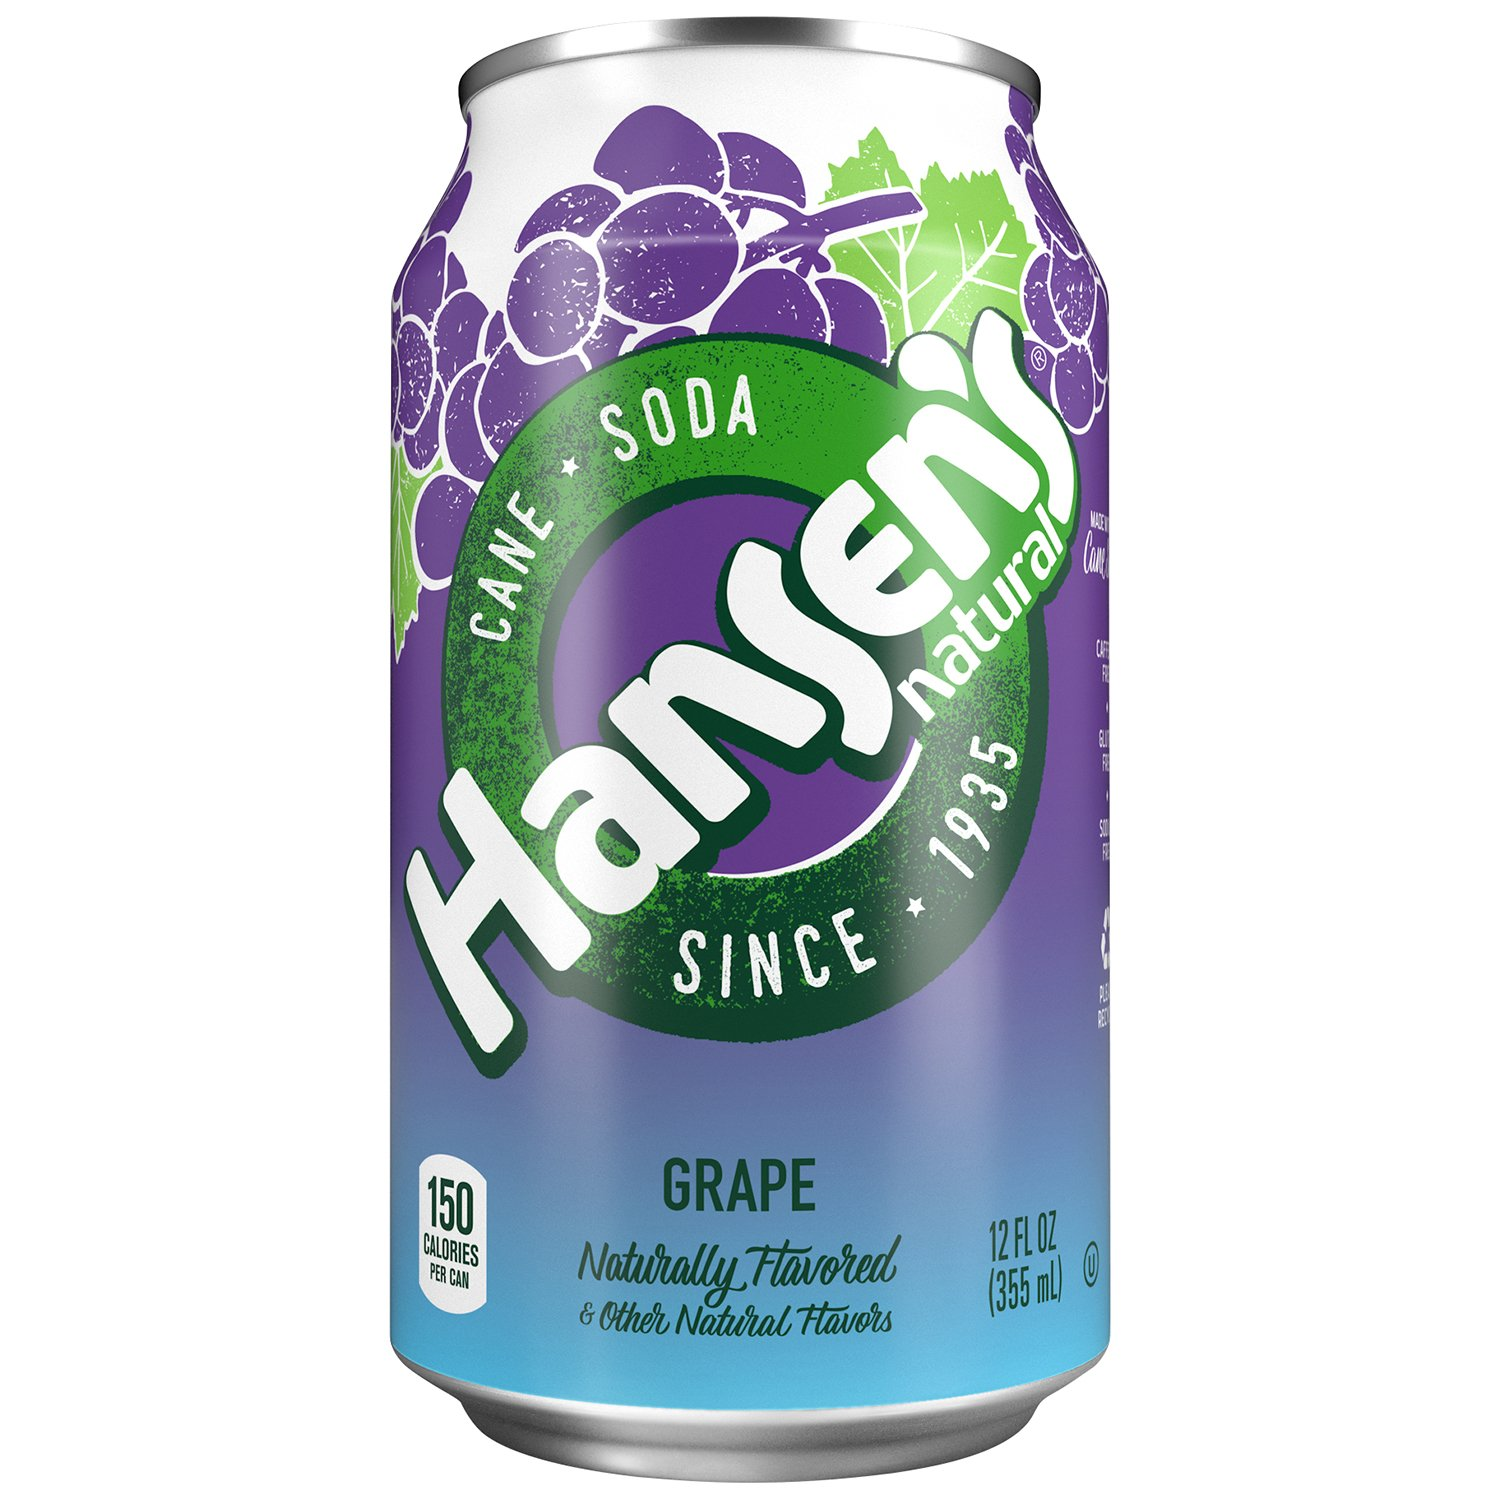 Hansen's Cane Soda (Grape, 12 fl oz, Pack of 24)